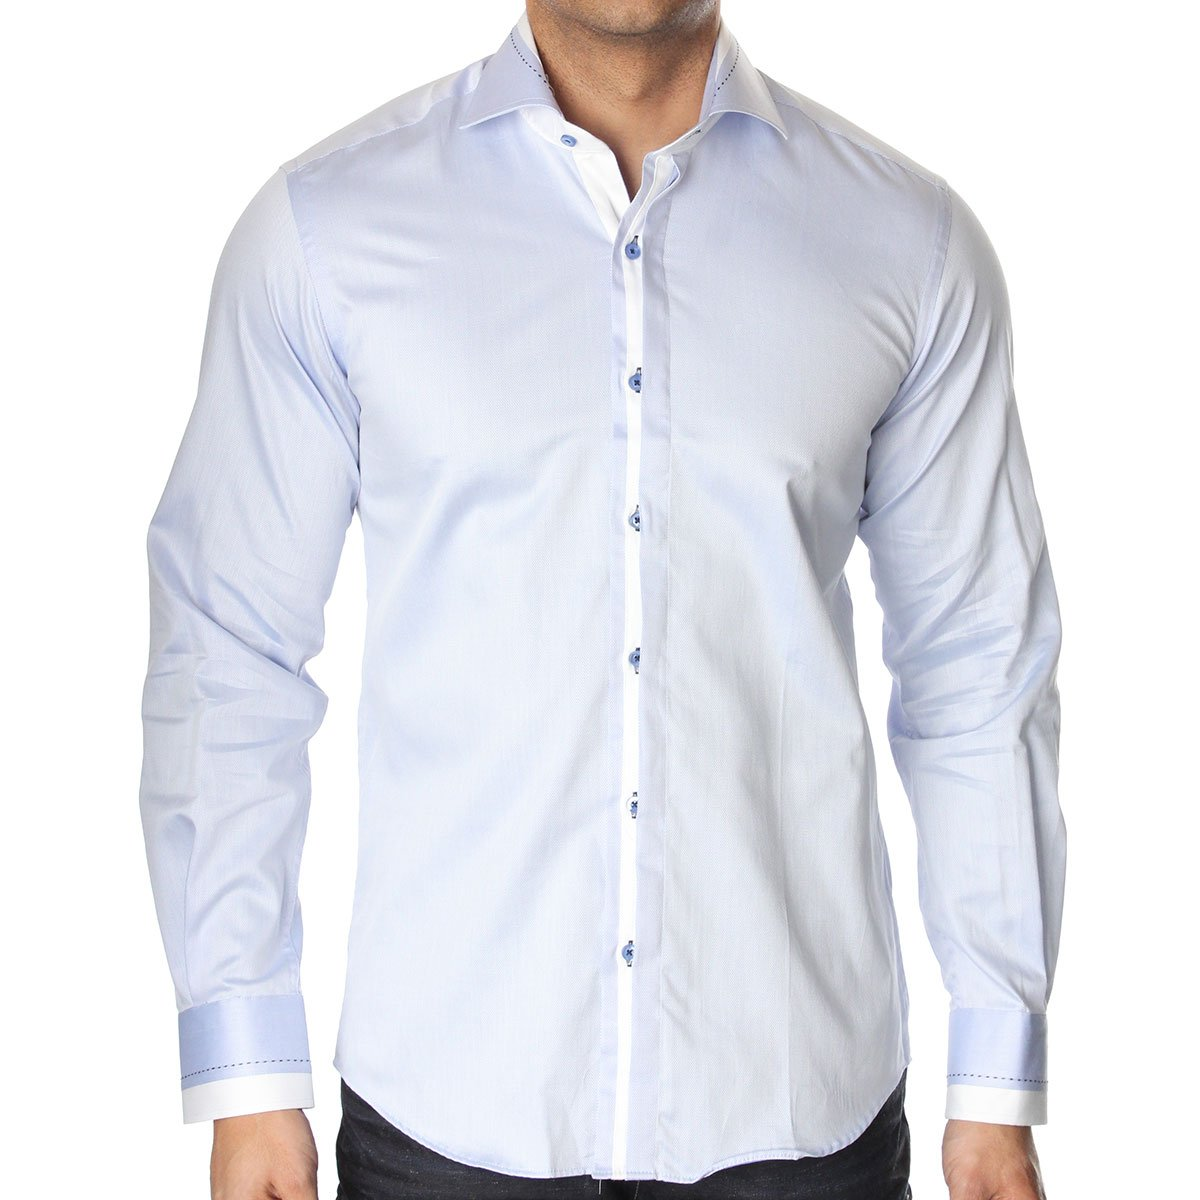 Claudio lugli cp5729 shirt various colours sizes for Sell shirts on your website